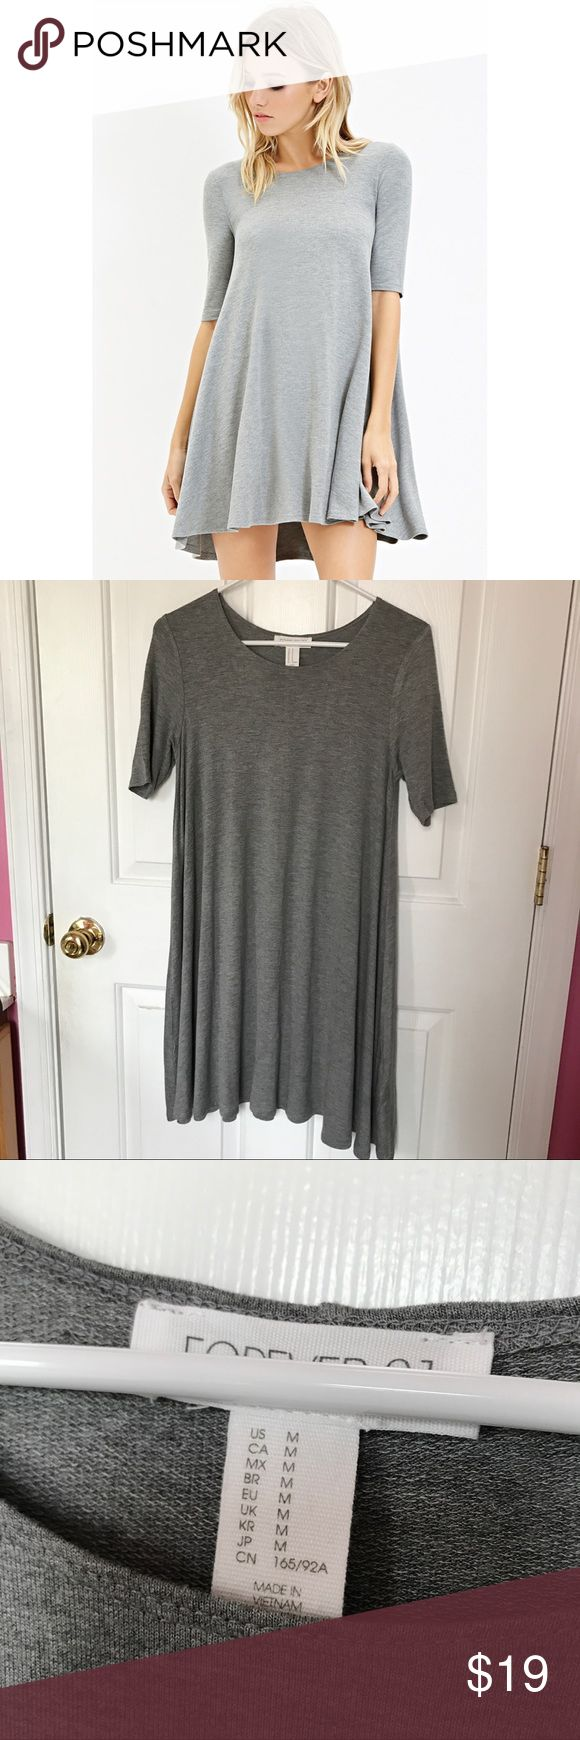 "🆕 Forever 21 Stretch Trapeze Dress Brand new with tags. Description STYLE DETAILS: A Dress Made From A Stretch Knit With 3/4 Sleeves And A Trapeze Silhouette. Unlined 95% Rayon, 5% Spandex FIT DETAILS: Measured From Small 34"" Full Length, 34"" Chest, 48"" Waist, 12"" Sleeve Length Forever 21 Dresses Mini"